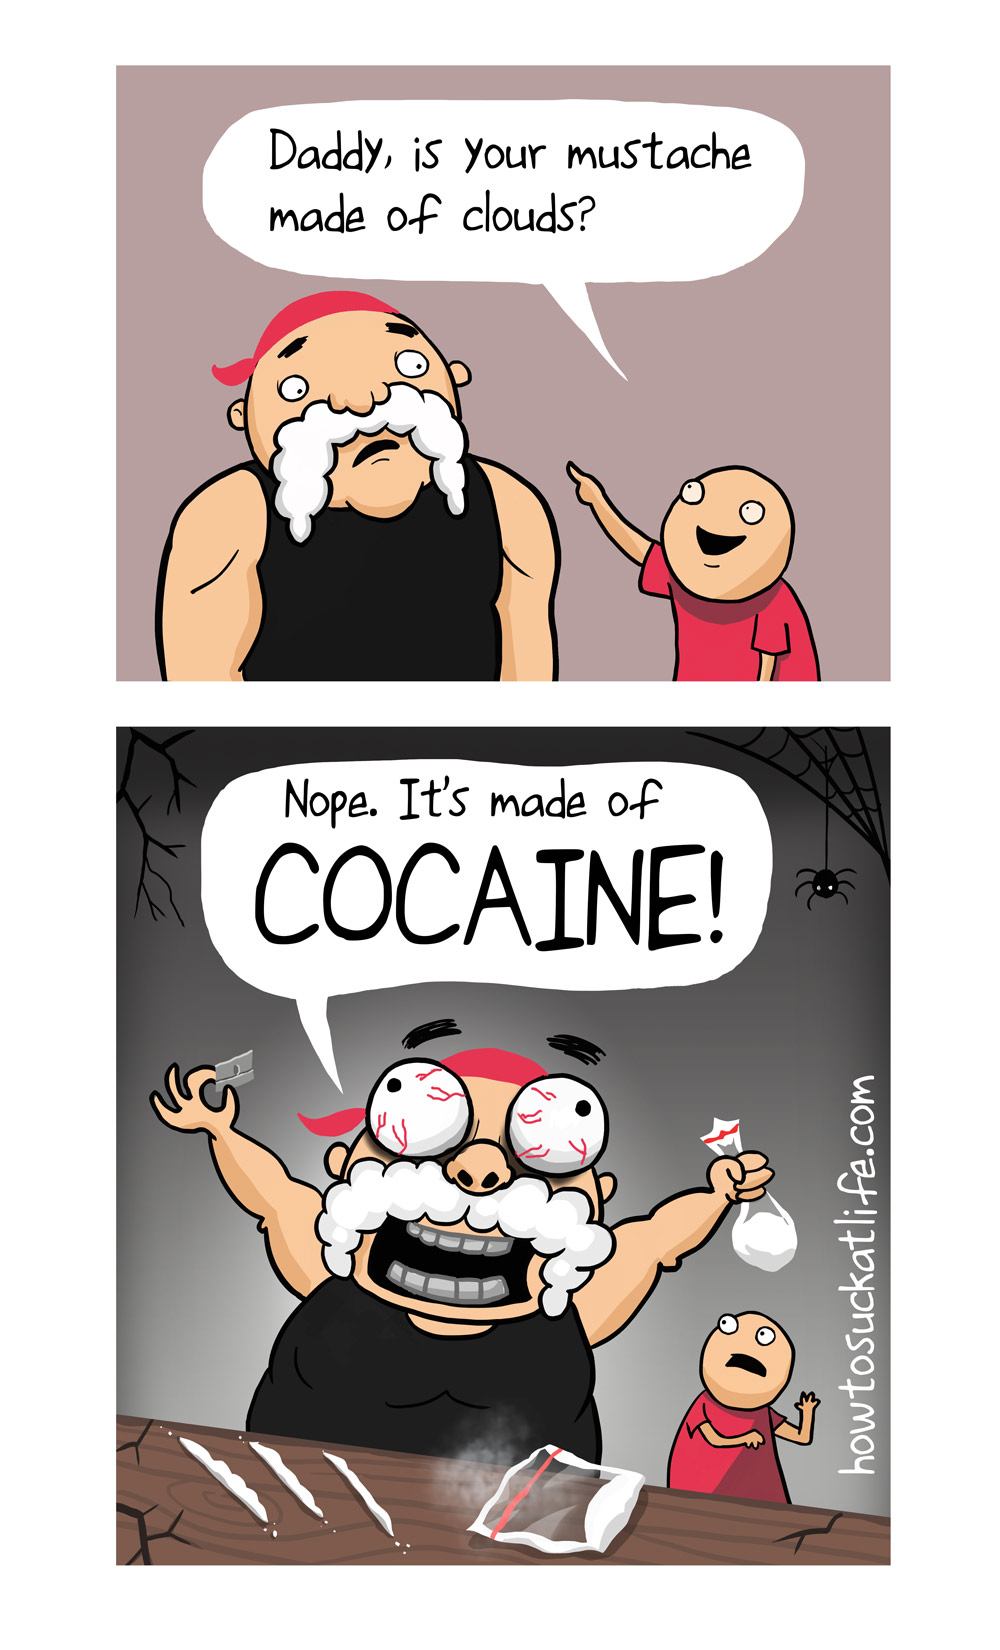 Cloud Mustache cocaine mustache comic 				<!-- add social buttons here --> 				<style> 					area {display:none;} 				</style>  				<div id=